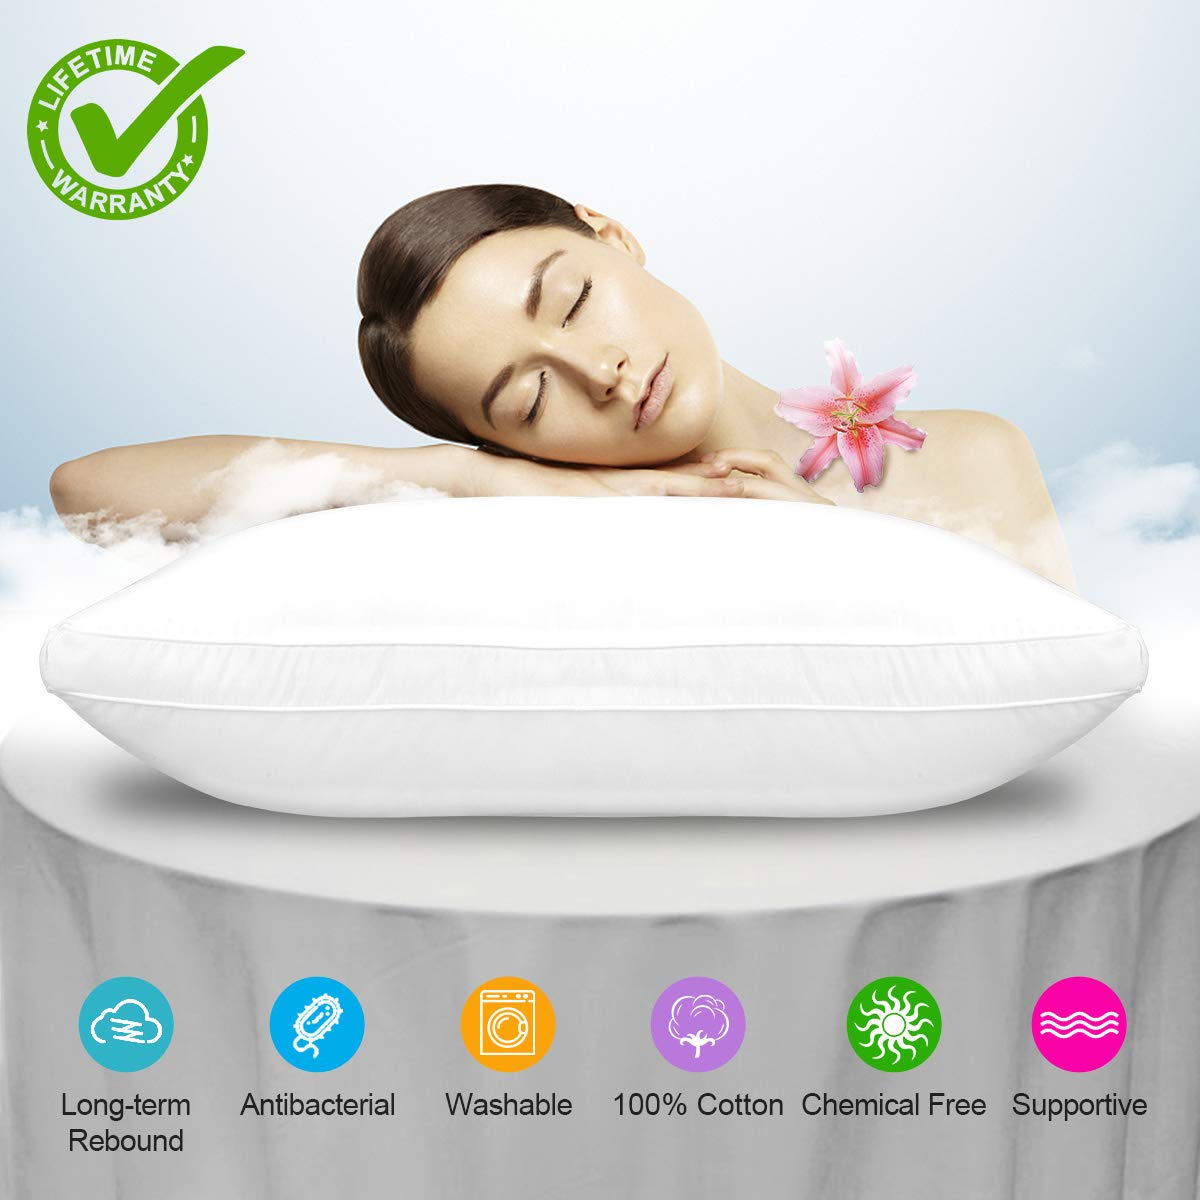 Bed Pillow, Bed Pillows White Hypoallergenic Dust Mite Resistant with Zipper Adjustable Loft Shred Fiber, Reading Bed Rest Pillows Down for Home Hotel Collection Sleeping Bedding Side Back Sleepers